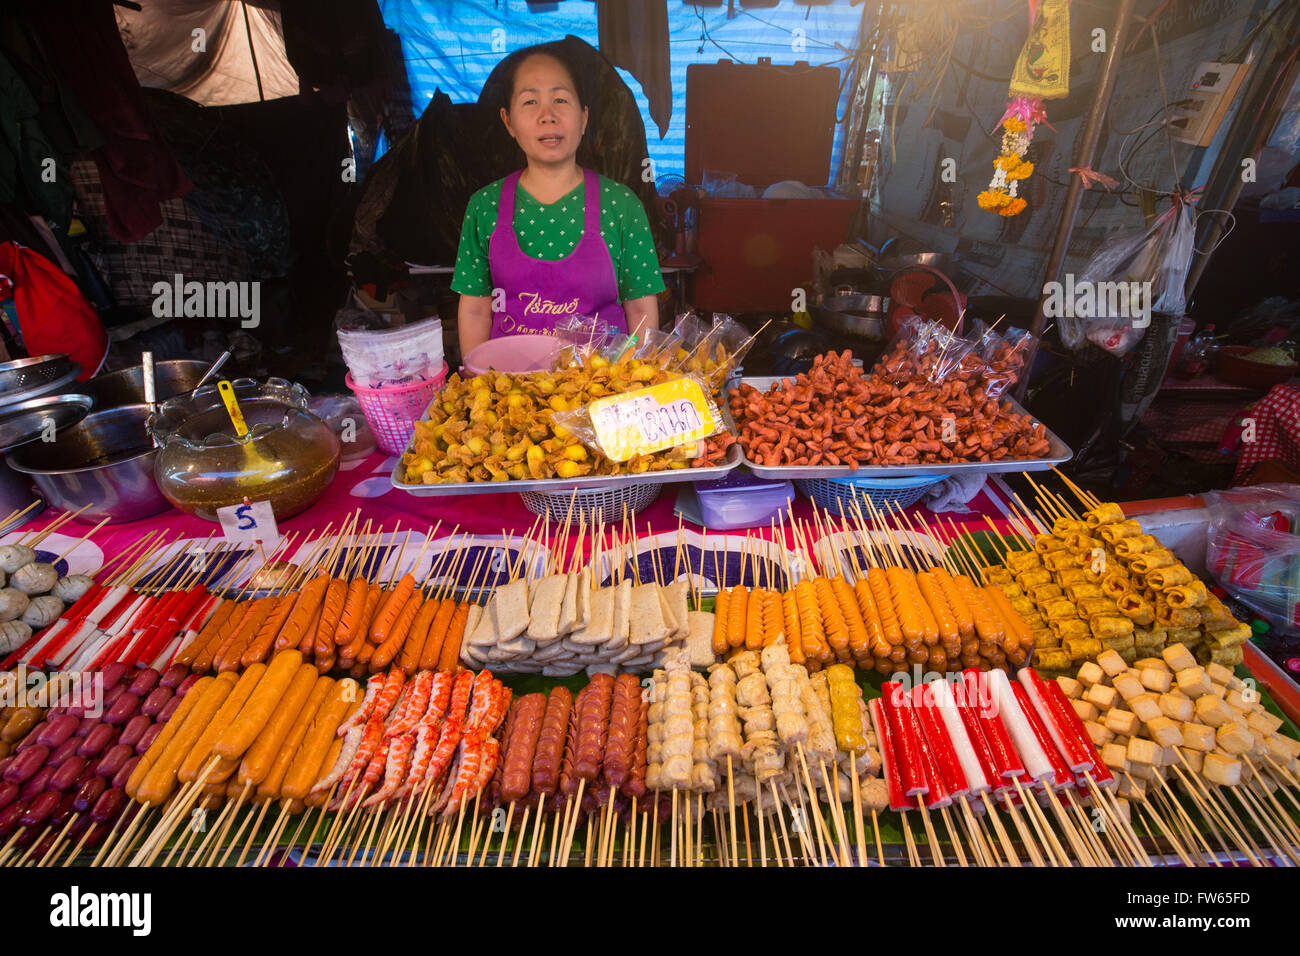 Woman at market stall with various skewers with meat, fish and sausage, food stall, food for sale at a night market, - Stock Image